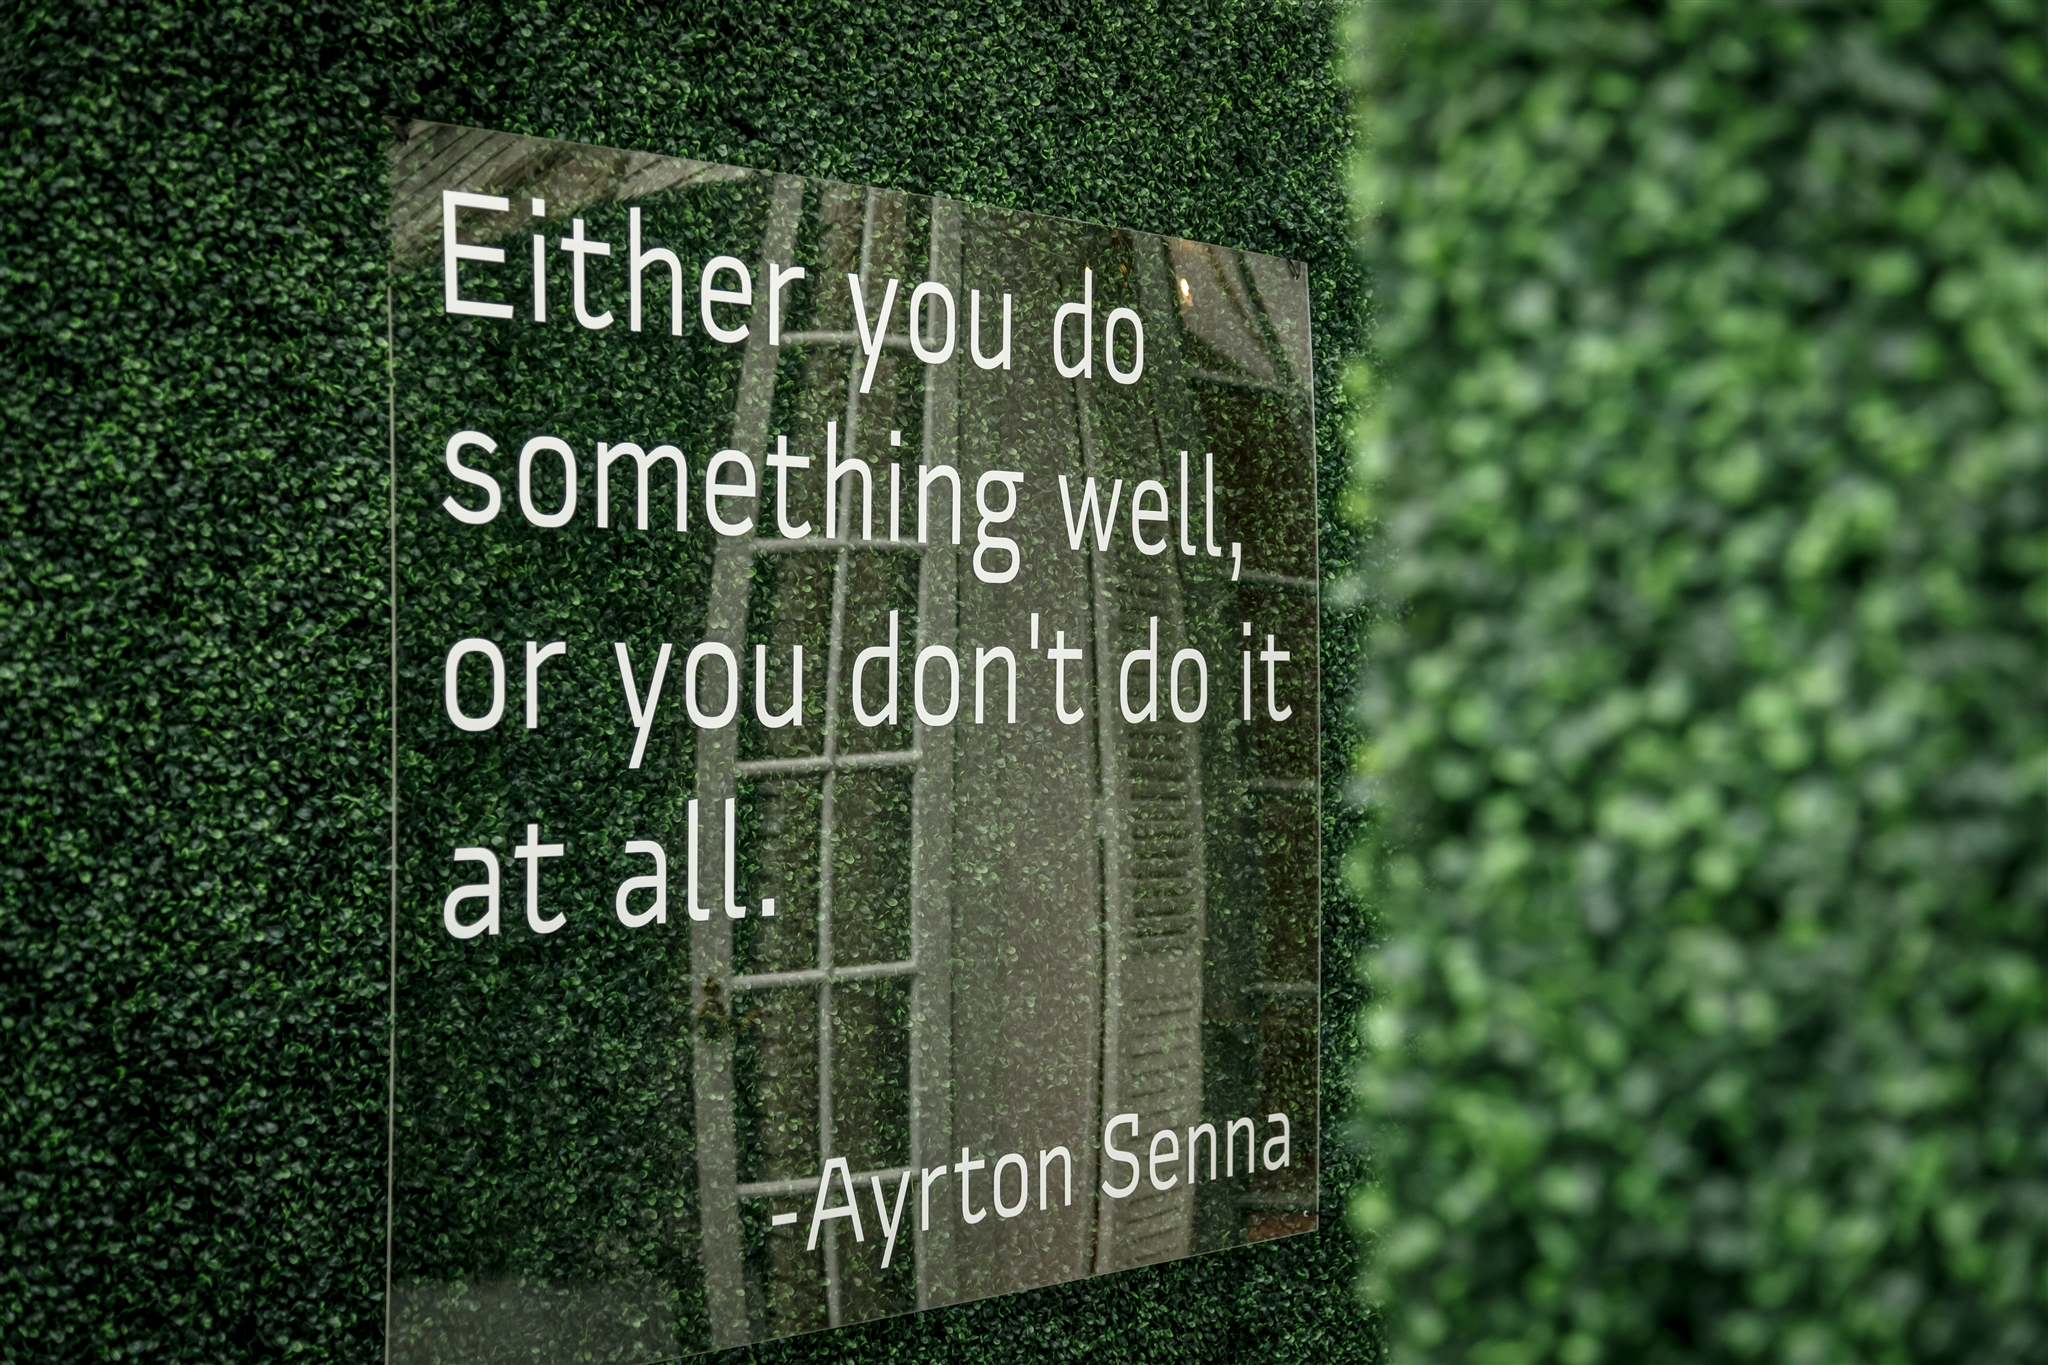 Ayrton Senna Quote.jpg